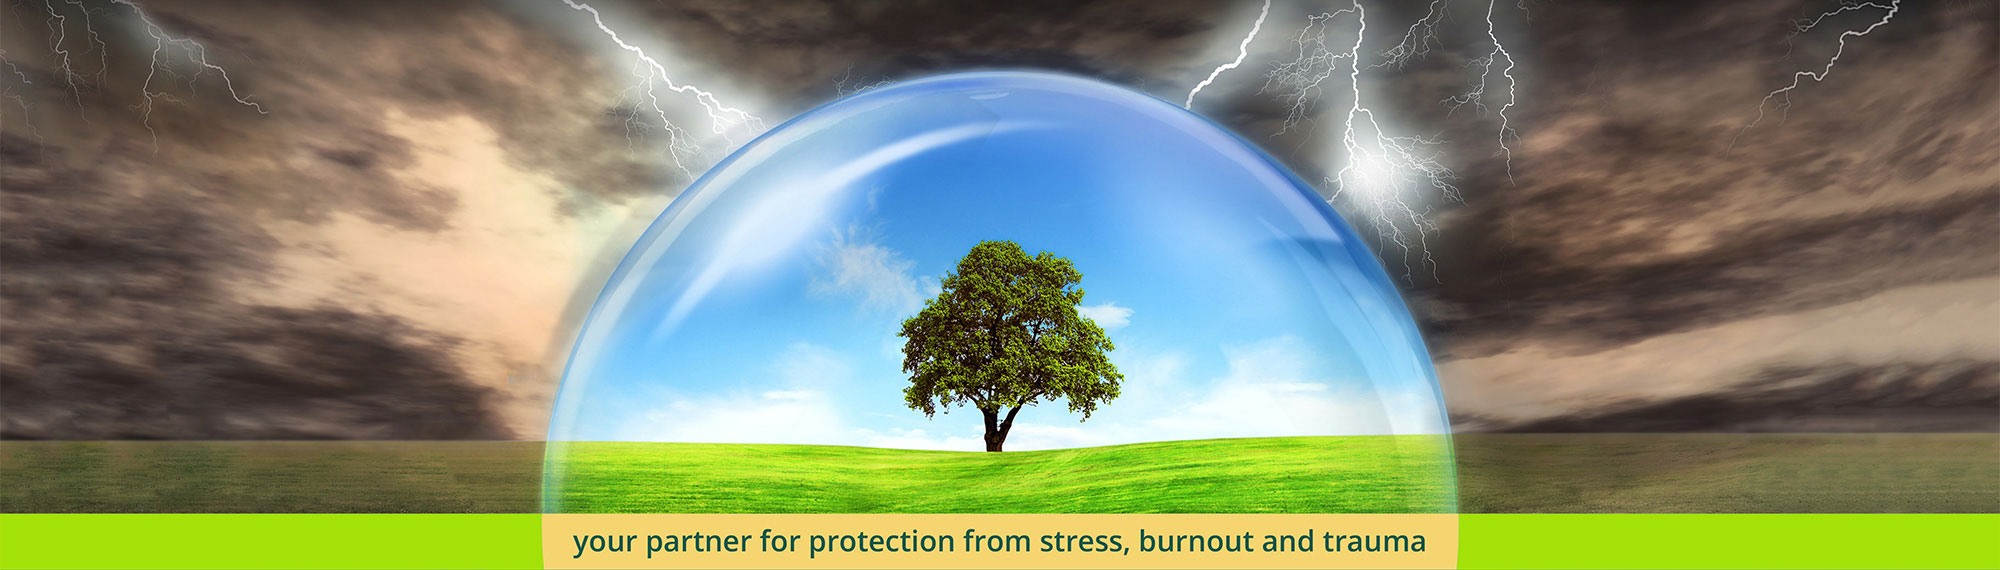 Greenleaf Integrative: Protection from stress, burnout, and trauma